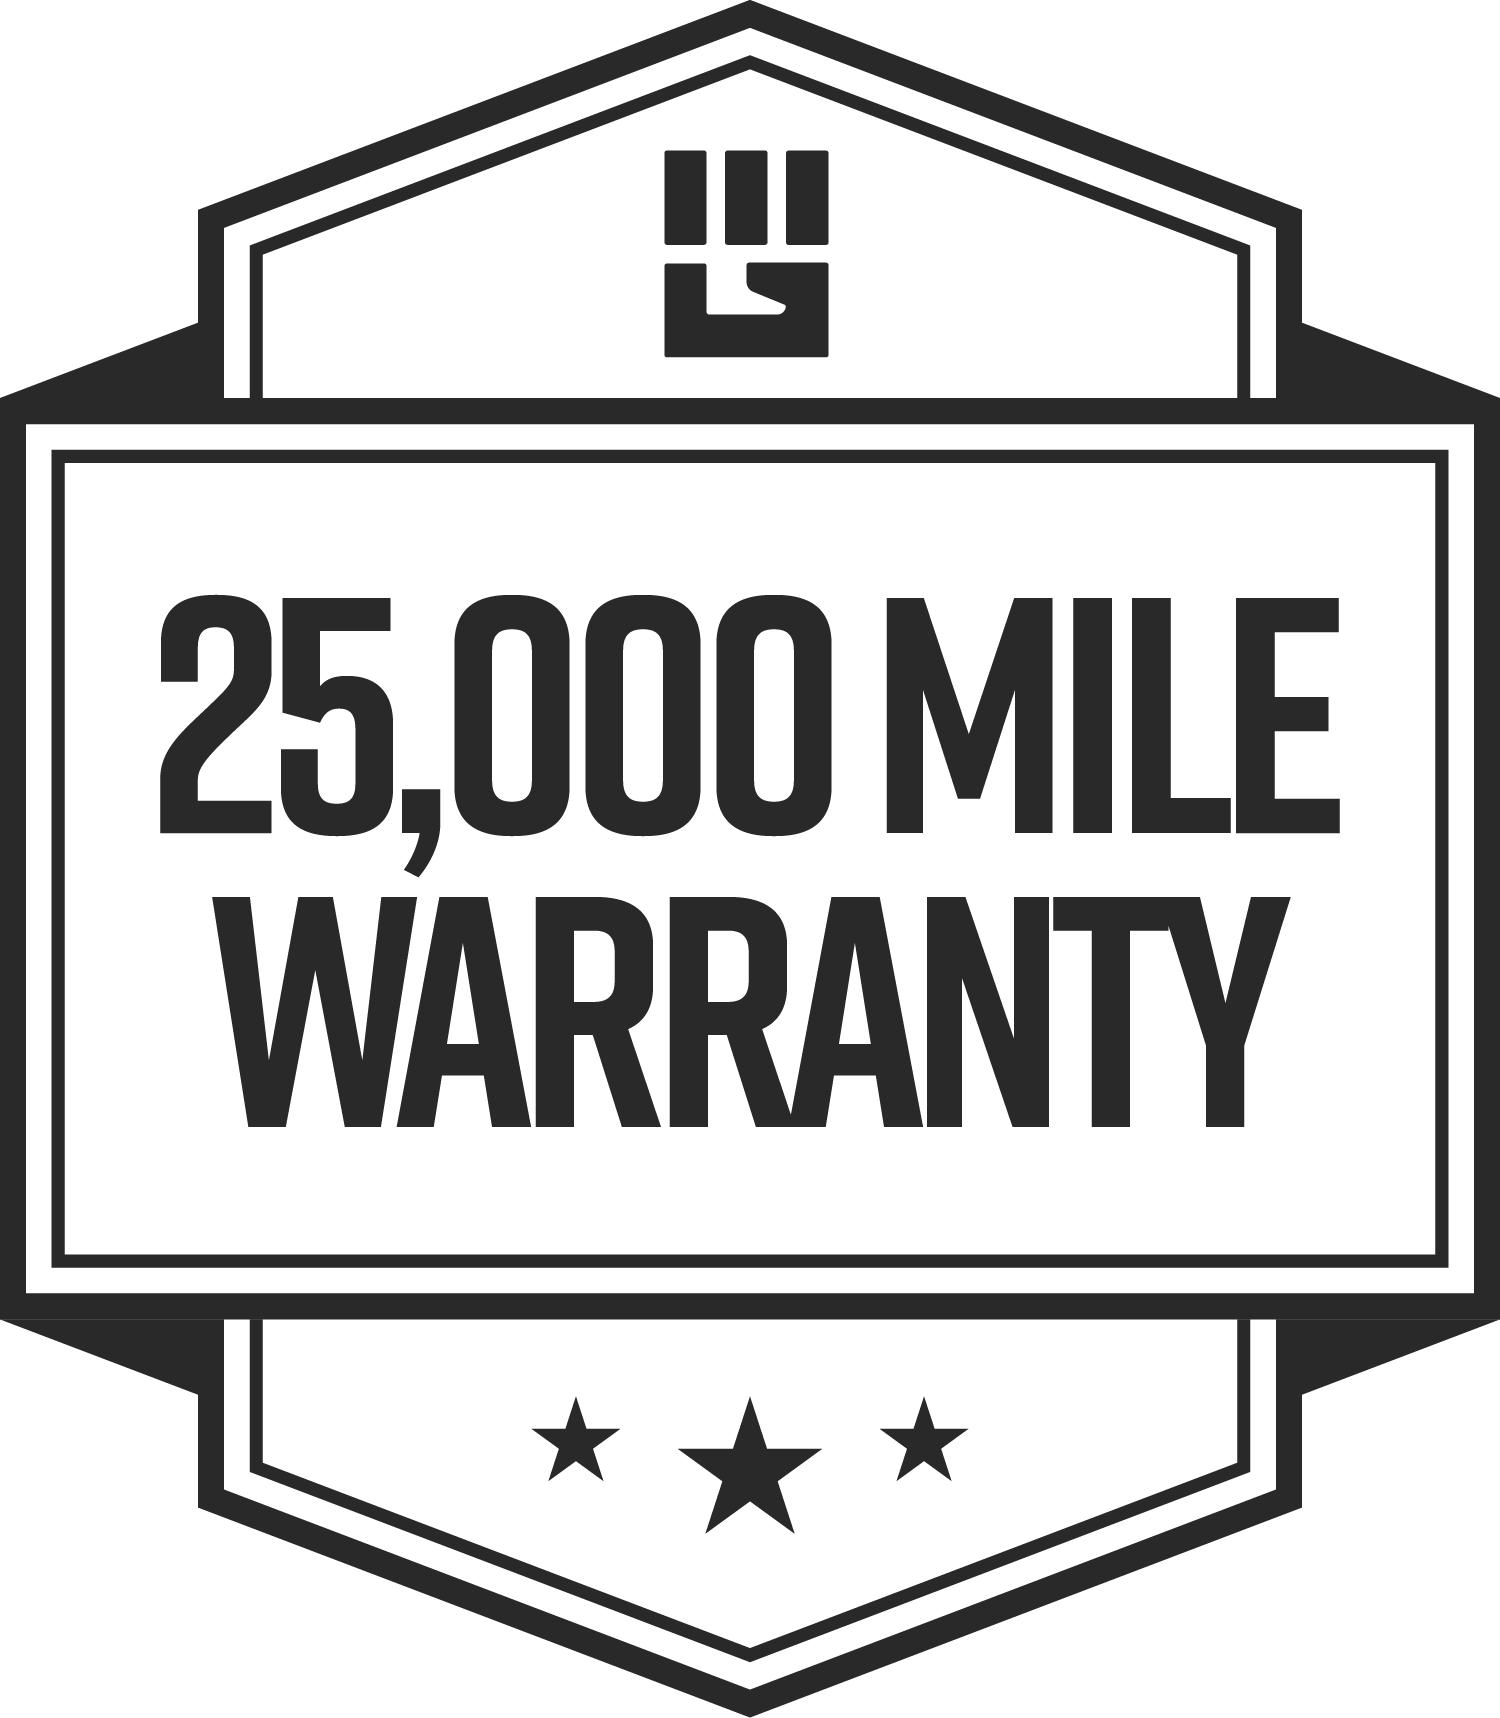 25,000 Mile MudGear Warranty Logo